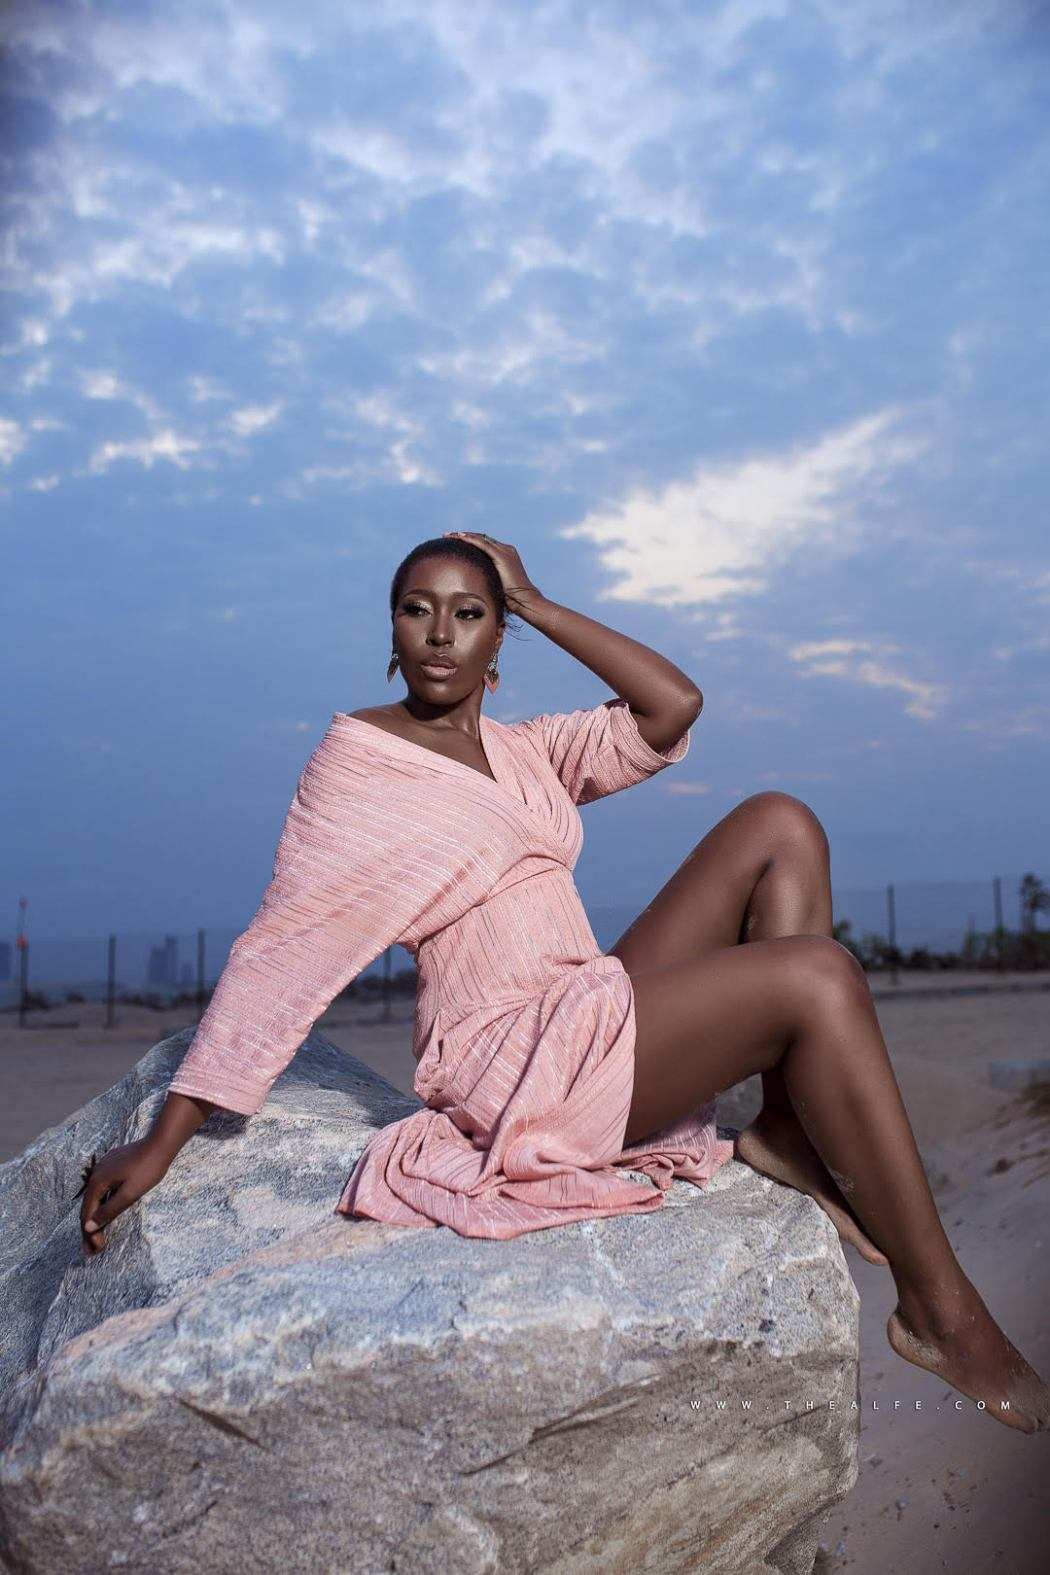 Vimbai 3 - Media girl Vimbai Mutinhiri releases stunning new birthday photos